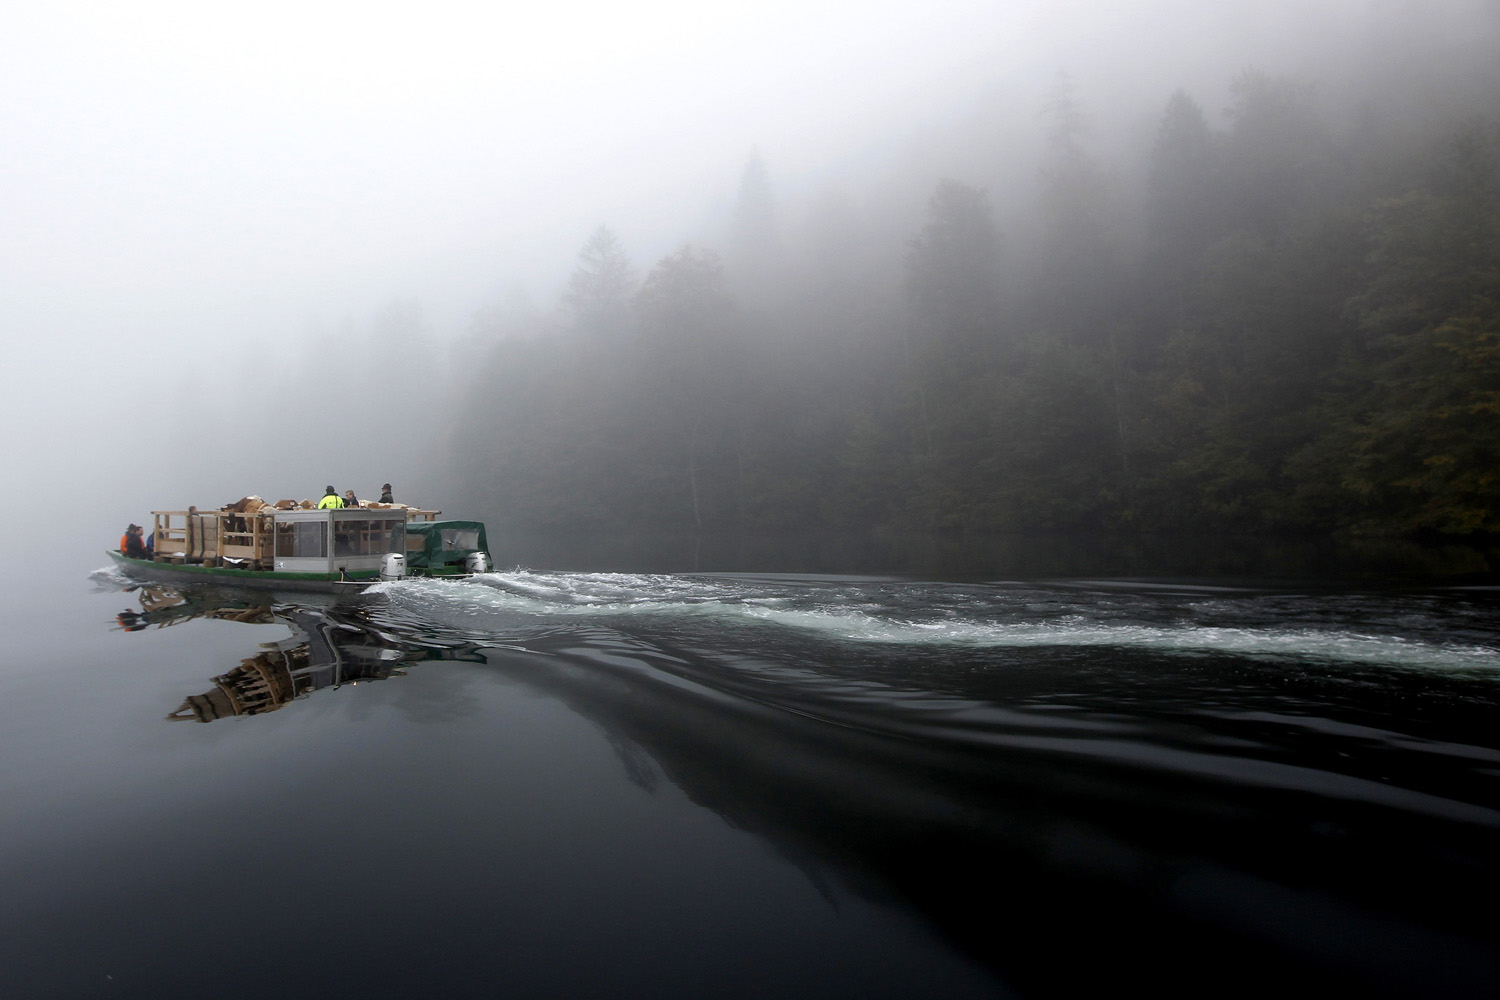 Oct. 5, 2013. Bavarian farmers transport their cows on a boat over the picturesque Lake Koenigssee in Germany.